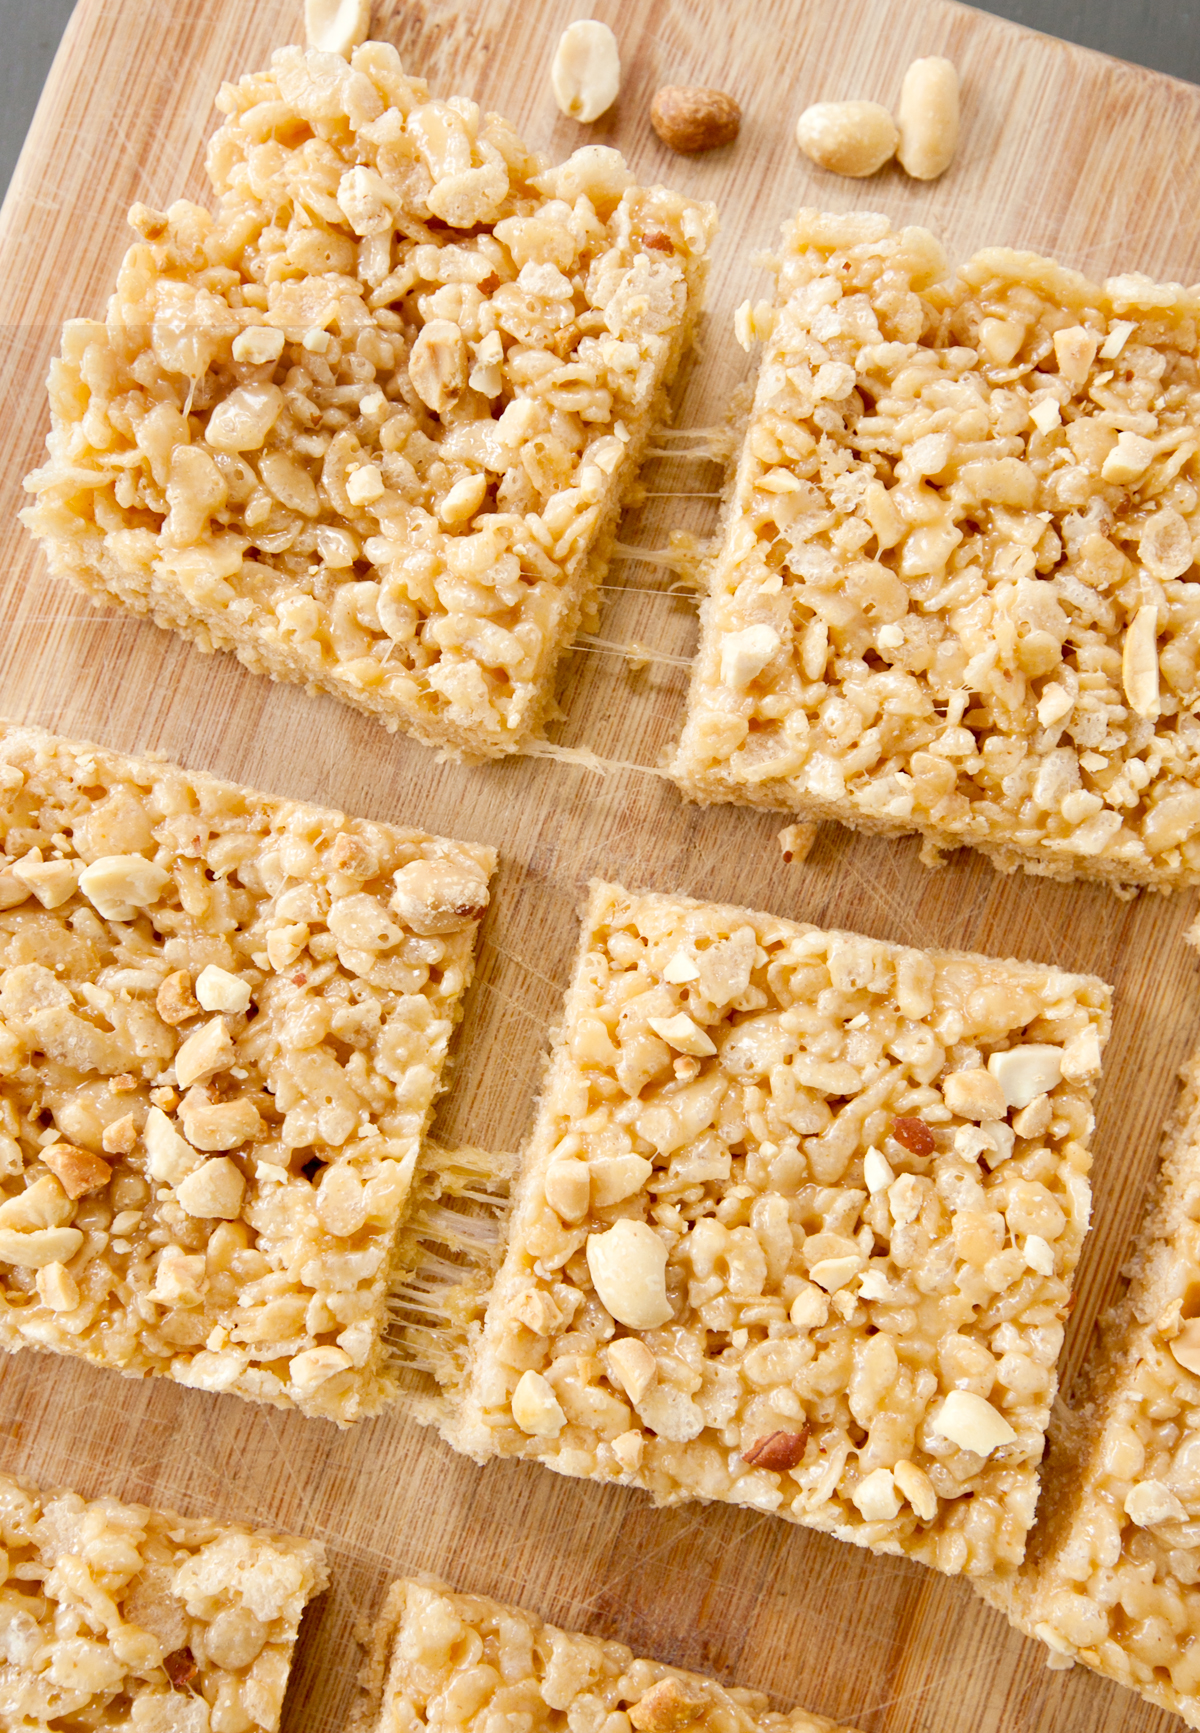 An overhead view of peanut butter rice krispie bars with stringy marshmallow